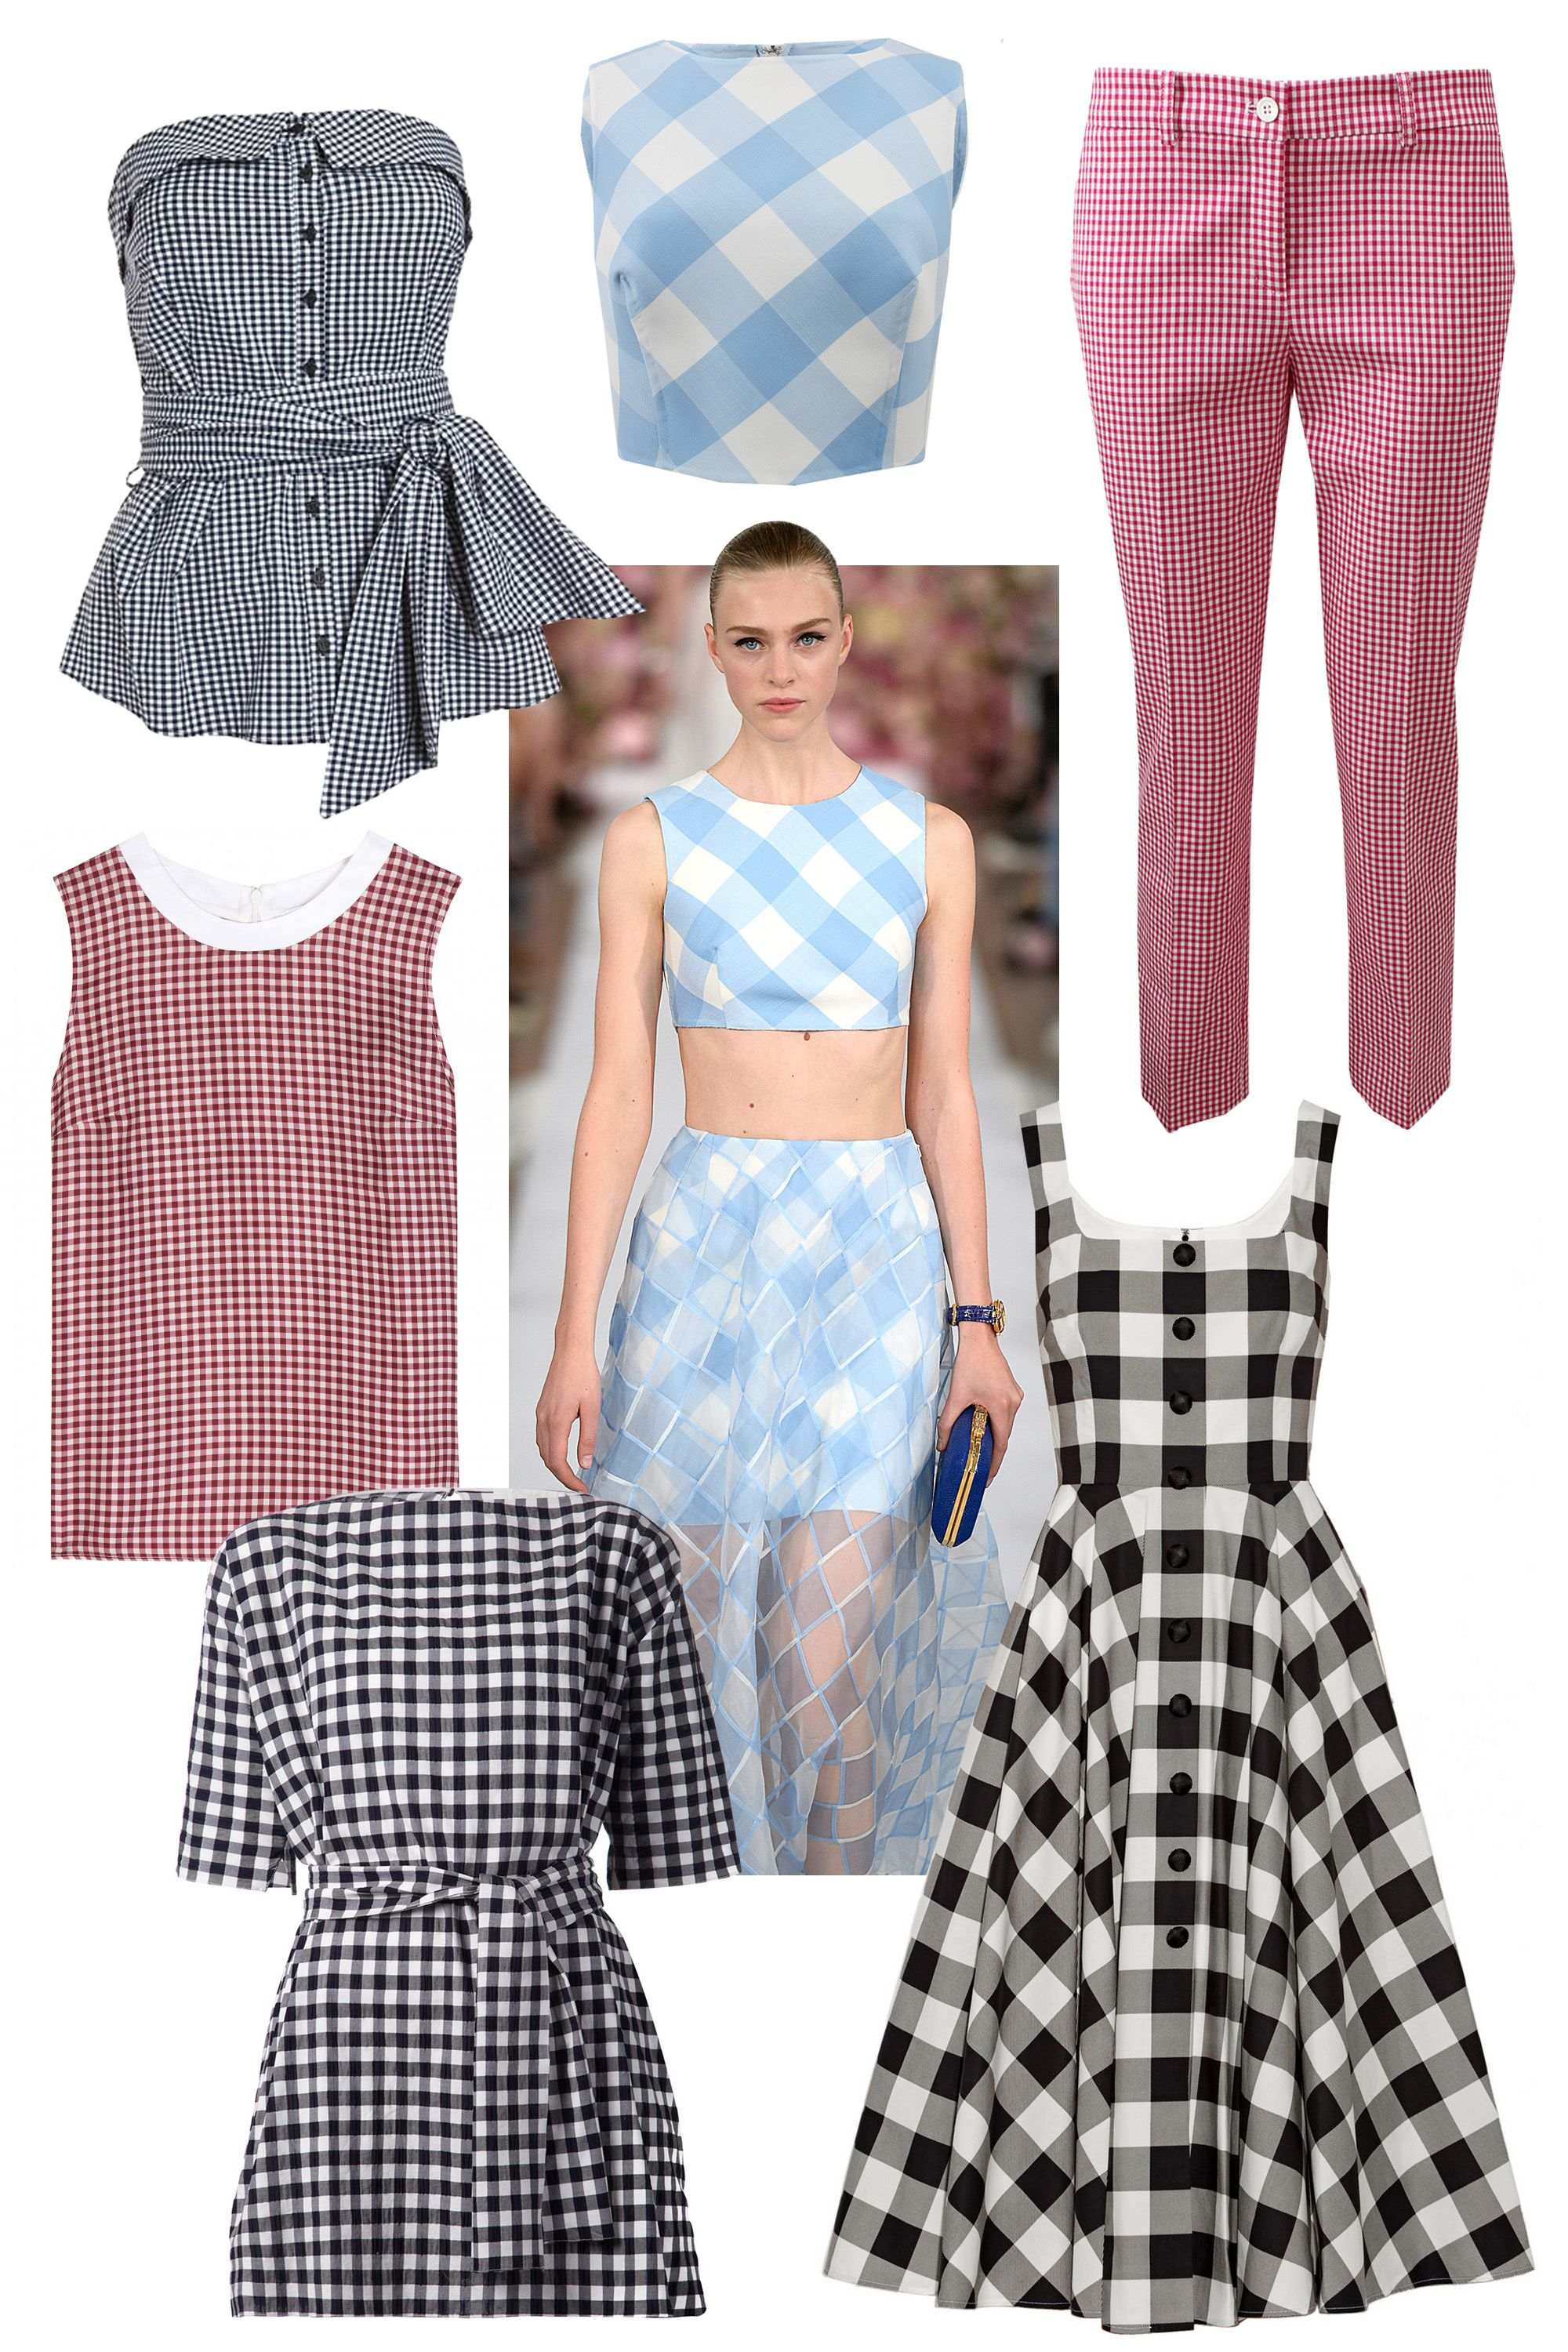 "The classic use of Gingham last season was seen in the full skirts and girlish tops at Diane von Furstenburg, Oscar de la Renta and Altuzarra. Forever associated with wholesome, summery activities, this sweet print is perfect for when it finally warms up.  <!--StartFragment-->   Clockwise:  Intermix Gingham Tie Front Bustier, $225; &lt;a href=""http://www.intermixonline.com/product/exclusive+for+intermix+gingham+tie+front+bustier.do?sortby=ourPicks&amp;amp;CurrentCat=4""&gt;intermixonline.com&lt;/a&gt;  Oscar de la Renta Buffalo Check CropTop, $890; &lt;a href=""http://www.marissacollections.com/shop/buffalo-check-crop-top-s15n6096t.html""&gt;marissacollections.com&lt;/a&gt;  Michael Kors Samantha Pant, $595; &lt;a href=""http://www.marissacollections.com/shop/gingham-samantha-pant-214ake071.html""&gt;marissacollections.com&lt;/a&gt;  Dolce &amp;amp; Gabbana Gingham Cotton-Poplin Dress, $2,295; &lt;a href=""http://www.net-a-porter.com/product/509224/Dolce_and_Gabbana/gingham-cotton-poplin-dress""&gt;net-a-porter.com&lt;/a&gt;  Chlo&eacute; Gingham Check Tunic, $1,050; &lt;a href=""http://www.farfetch.com/shopping/women/chloe-gingham-check-tunic-item-10920030.aspx?storeid=9531&amp;amp;ffref=lp_5_""&gt;farfetch.com&lt;/a&gt;  Victoria Beckham Denim Silk Top, $395; &lt;a href=""http://www.mytheresa.com/en-us/silk-top-376413.html""&gt;mytheresa.com&lt;/a&gt;"